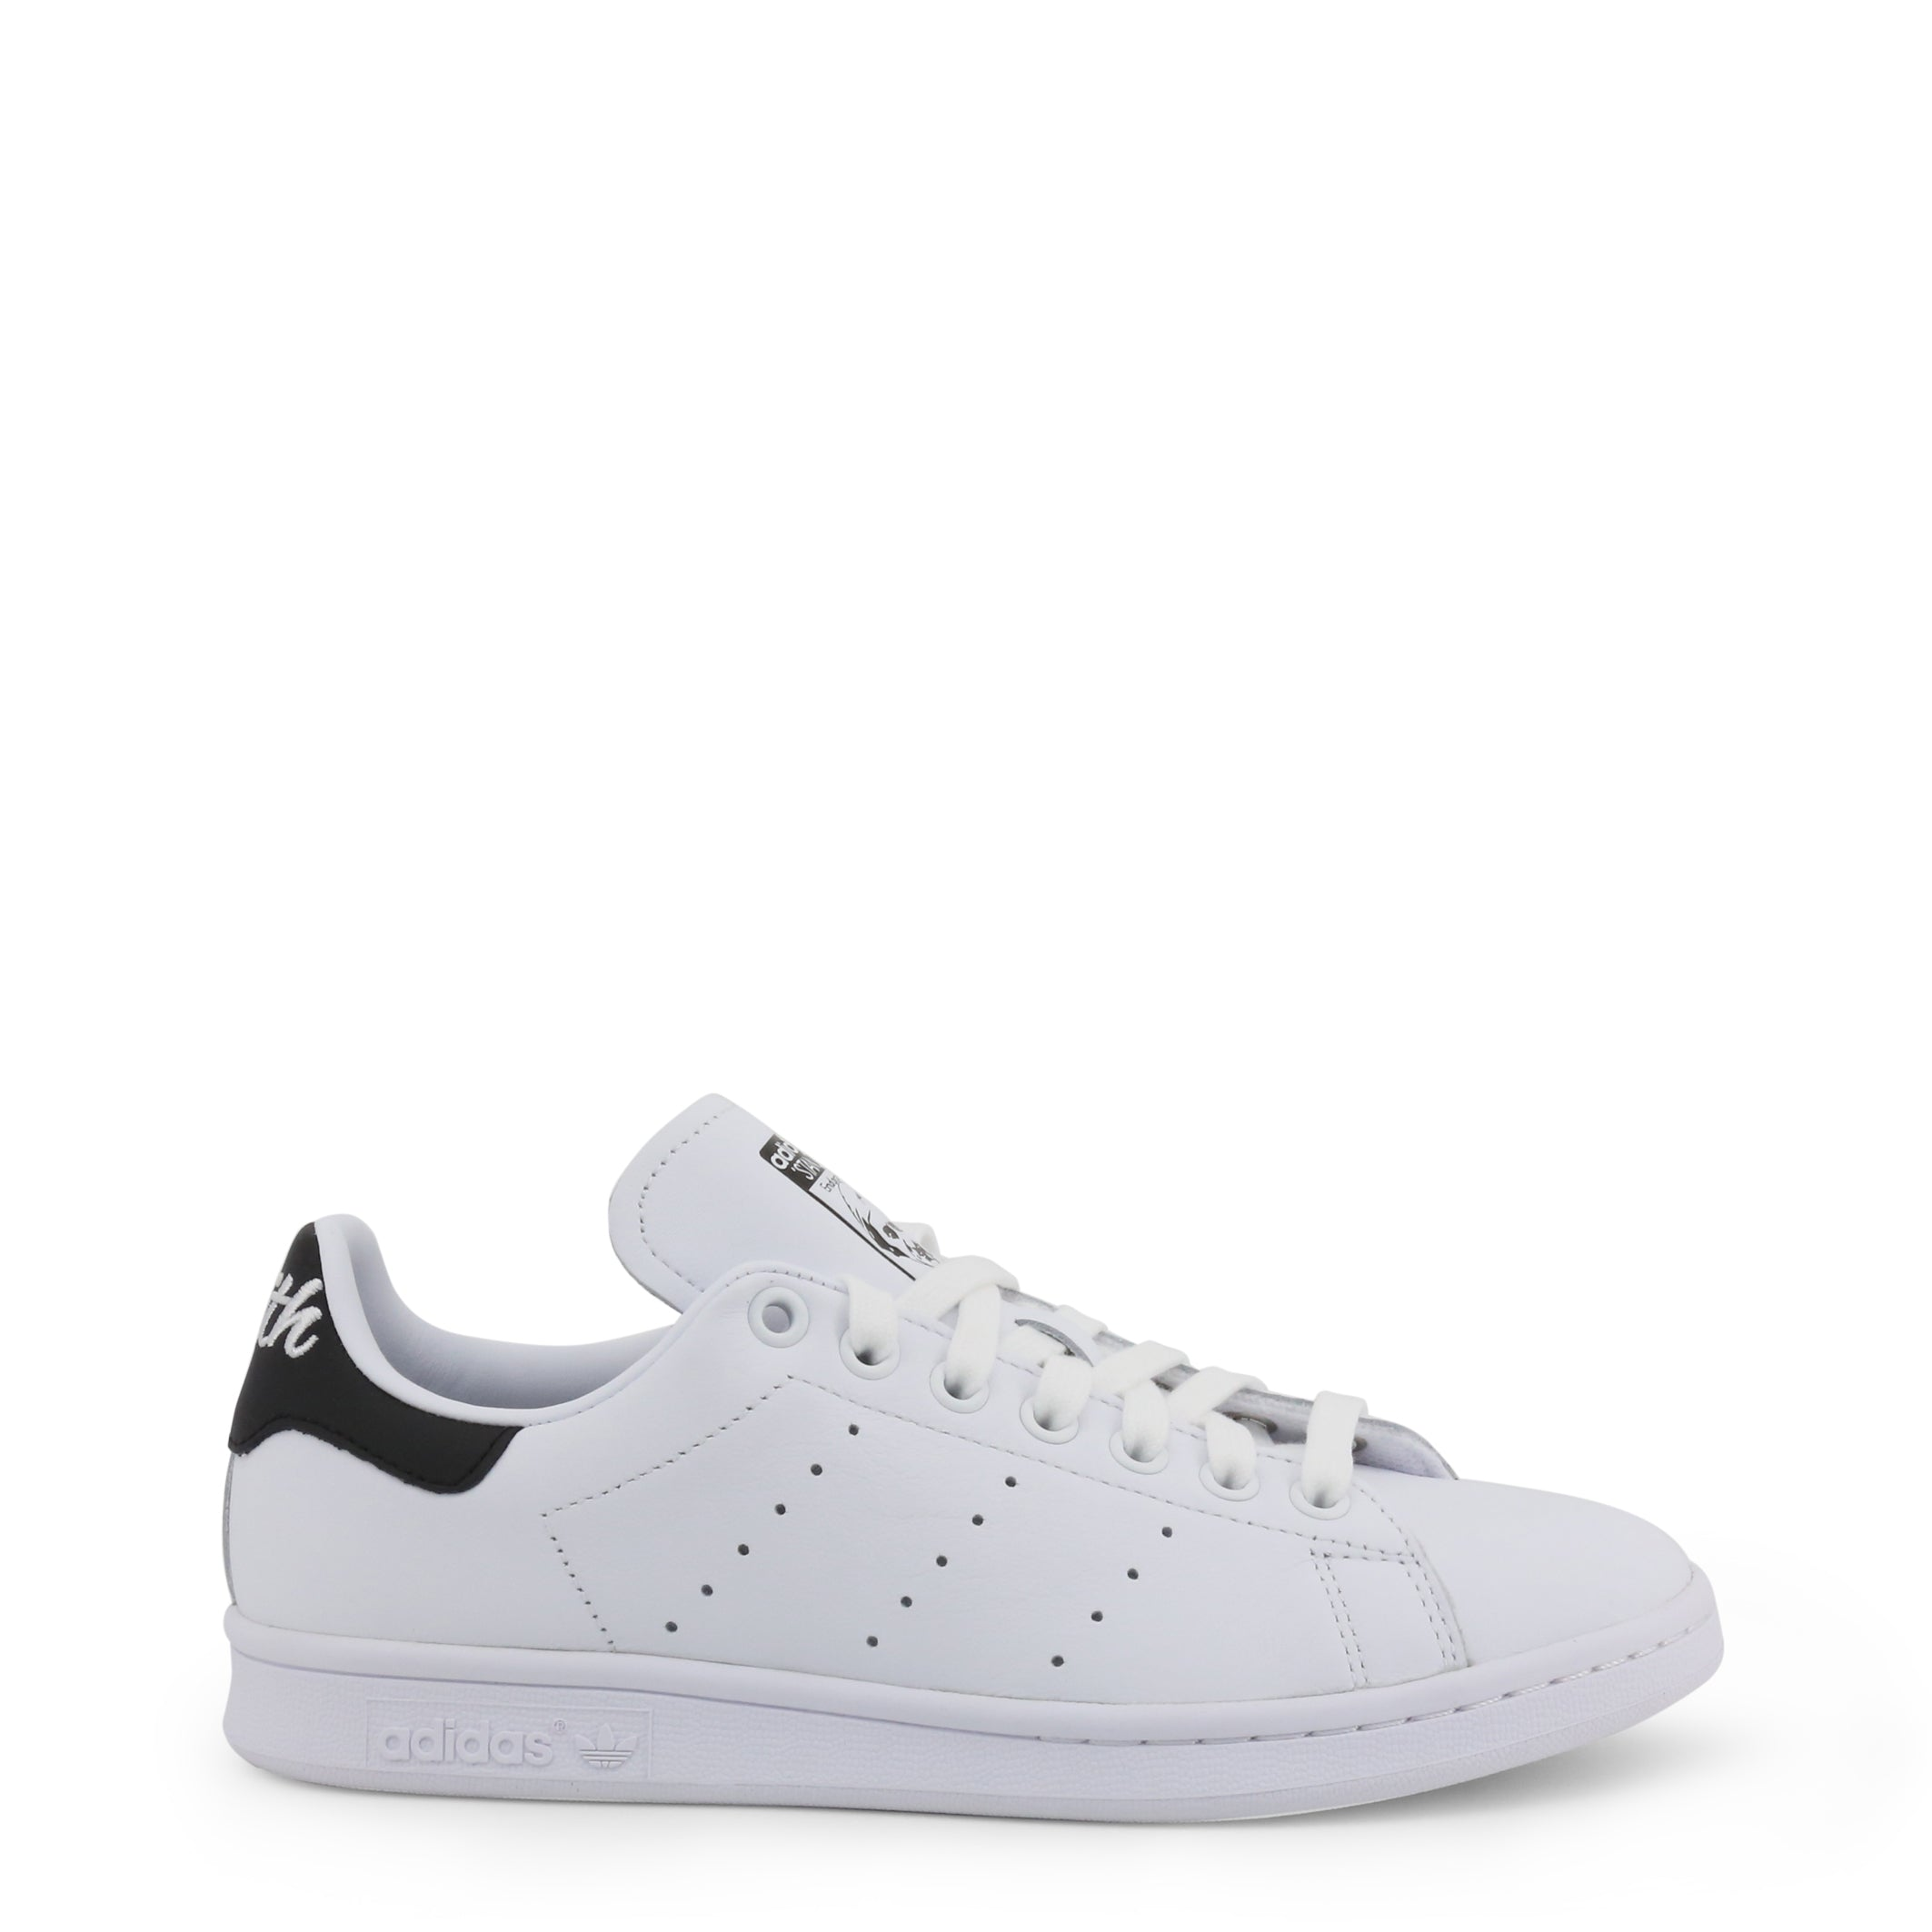 Adidas - StanSmith - Chaussures Sneakers